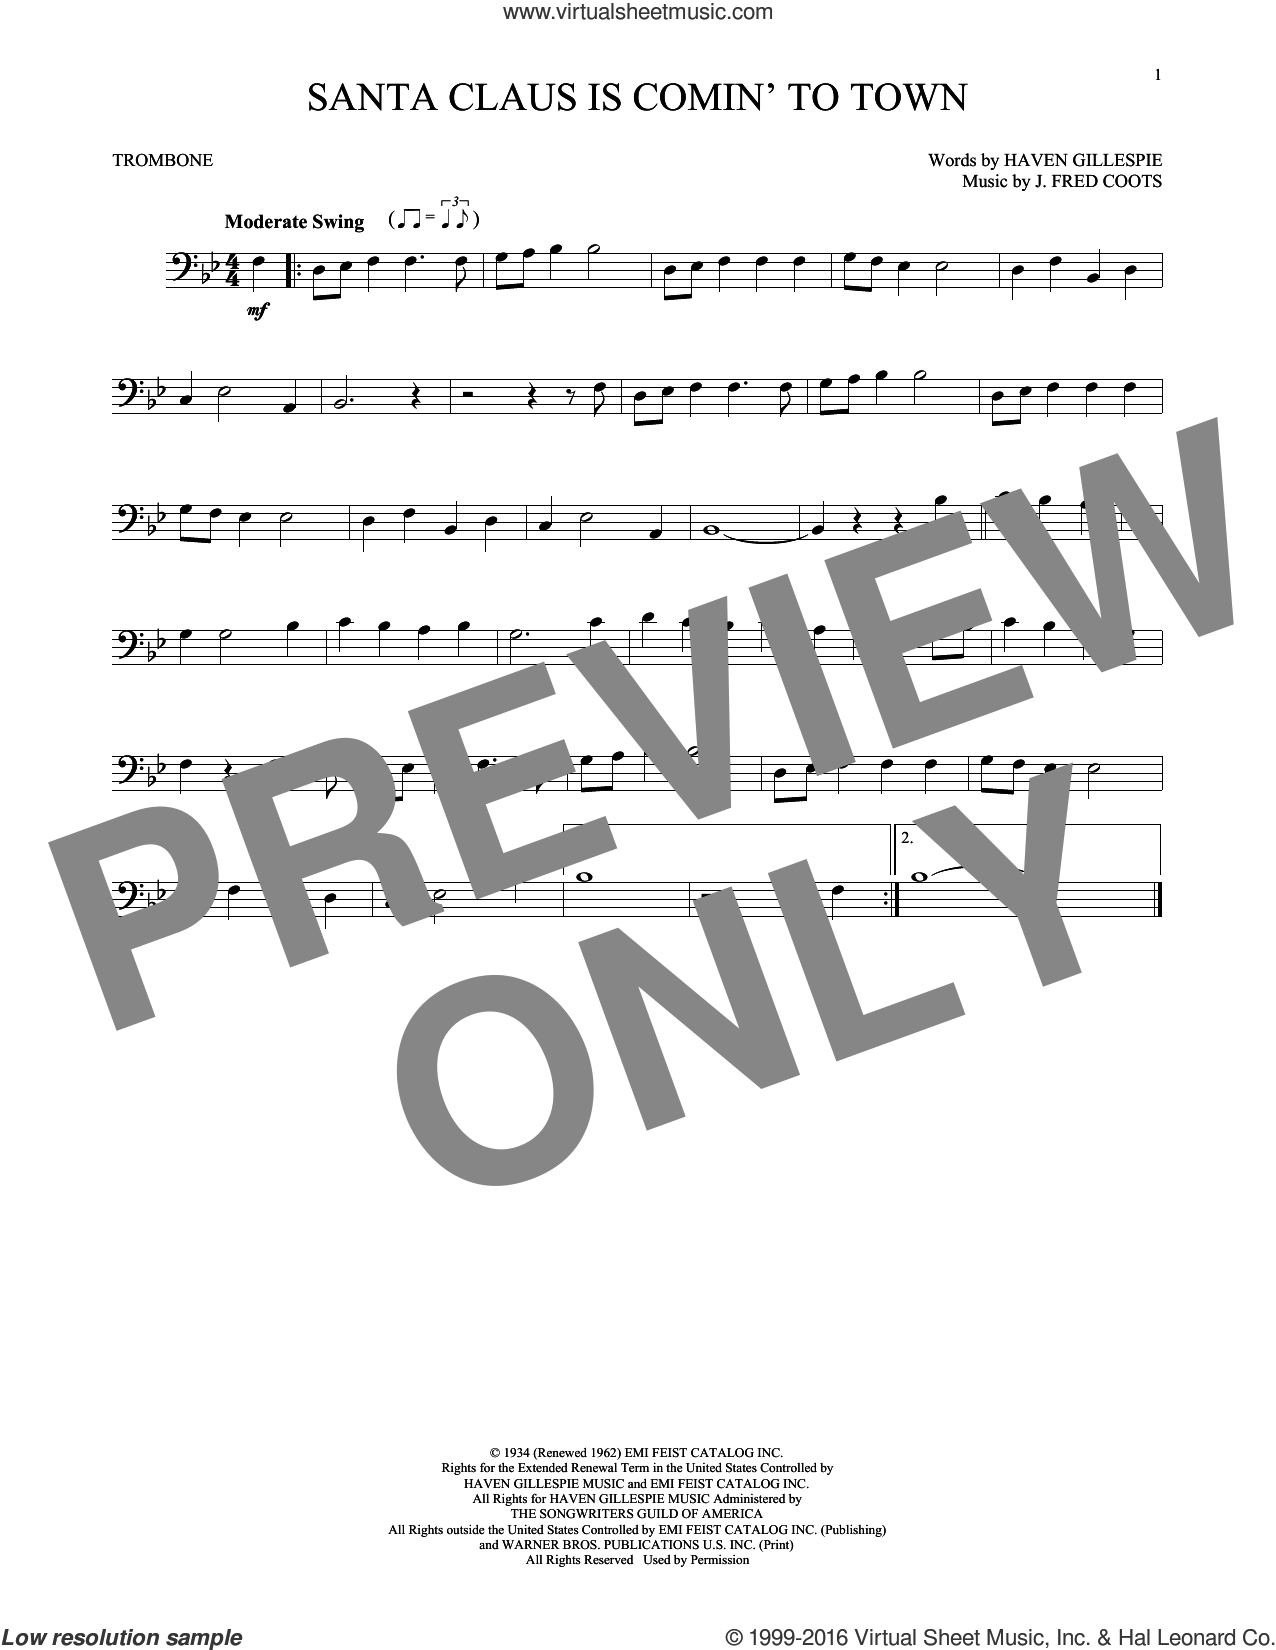 Santa Claus Is Comin' To Town sheet music for trombone solo by J. Fred Coots and Haven Gillespie, intermediate